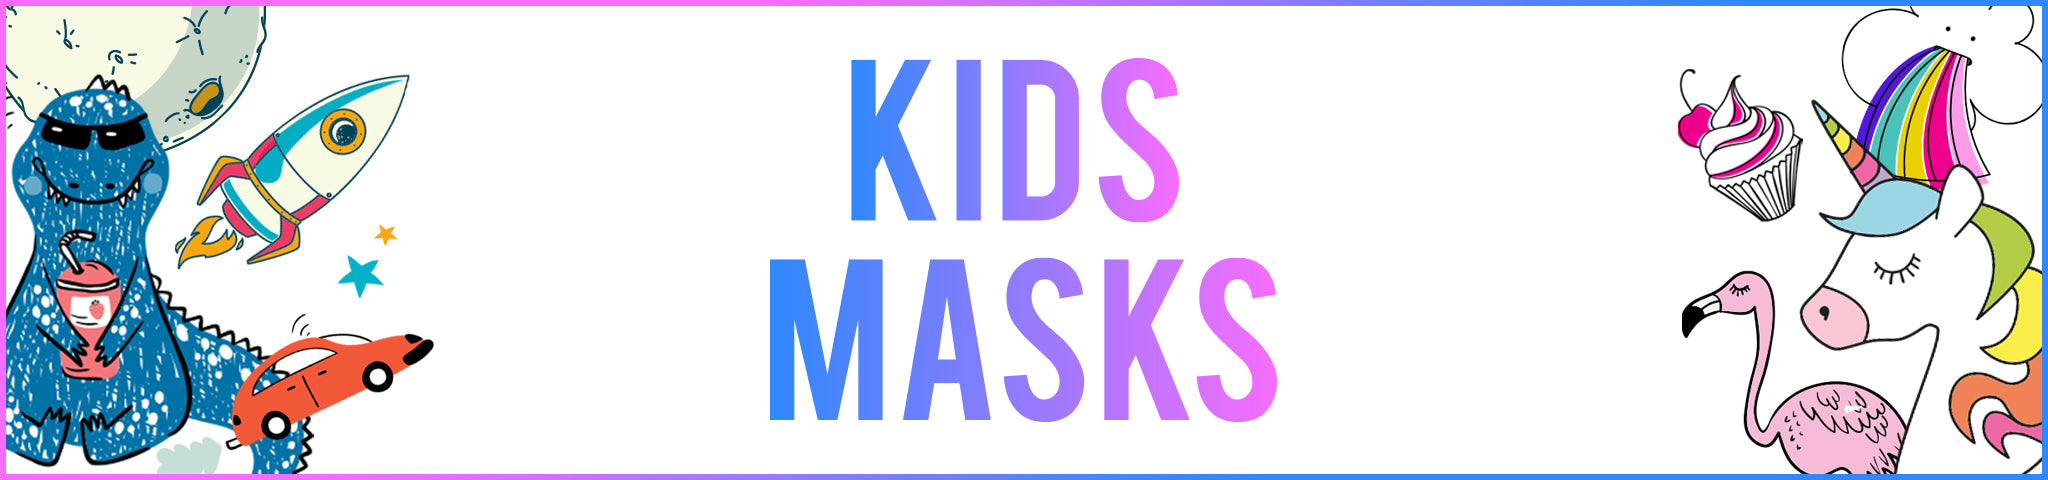 Kid's Face Masks for Children - Doodle Masks